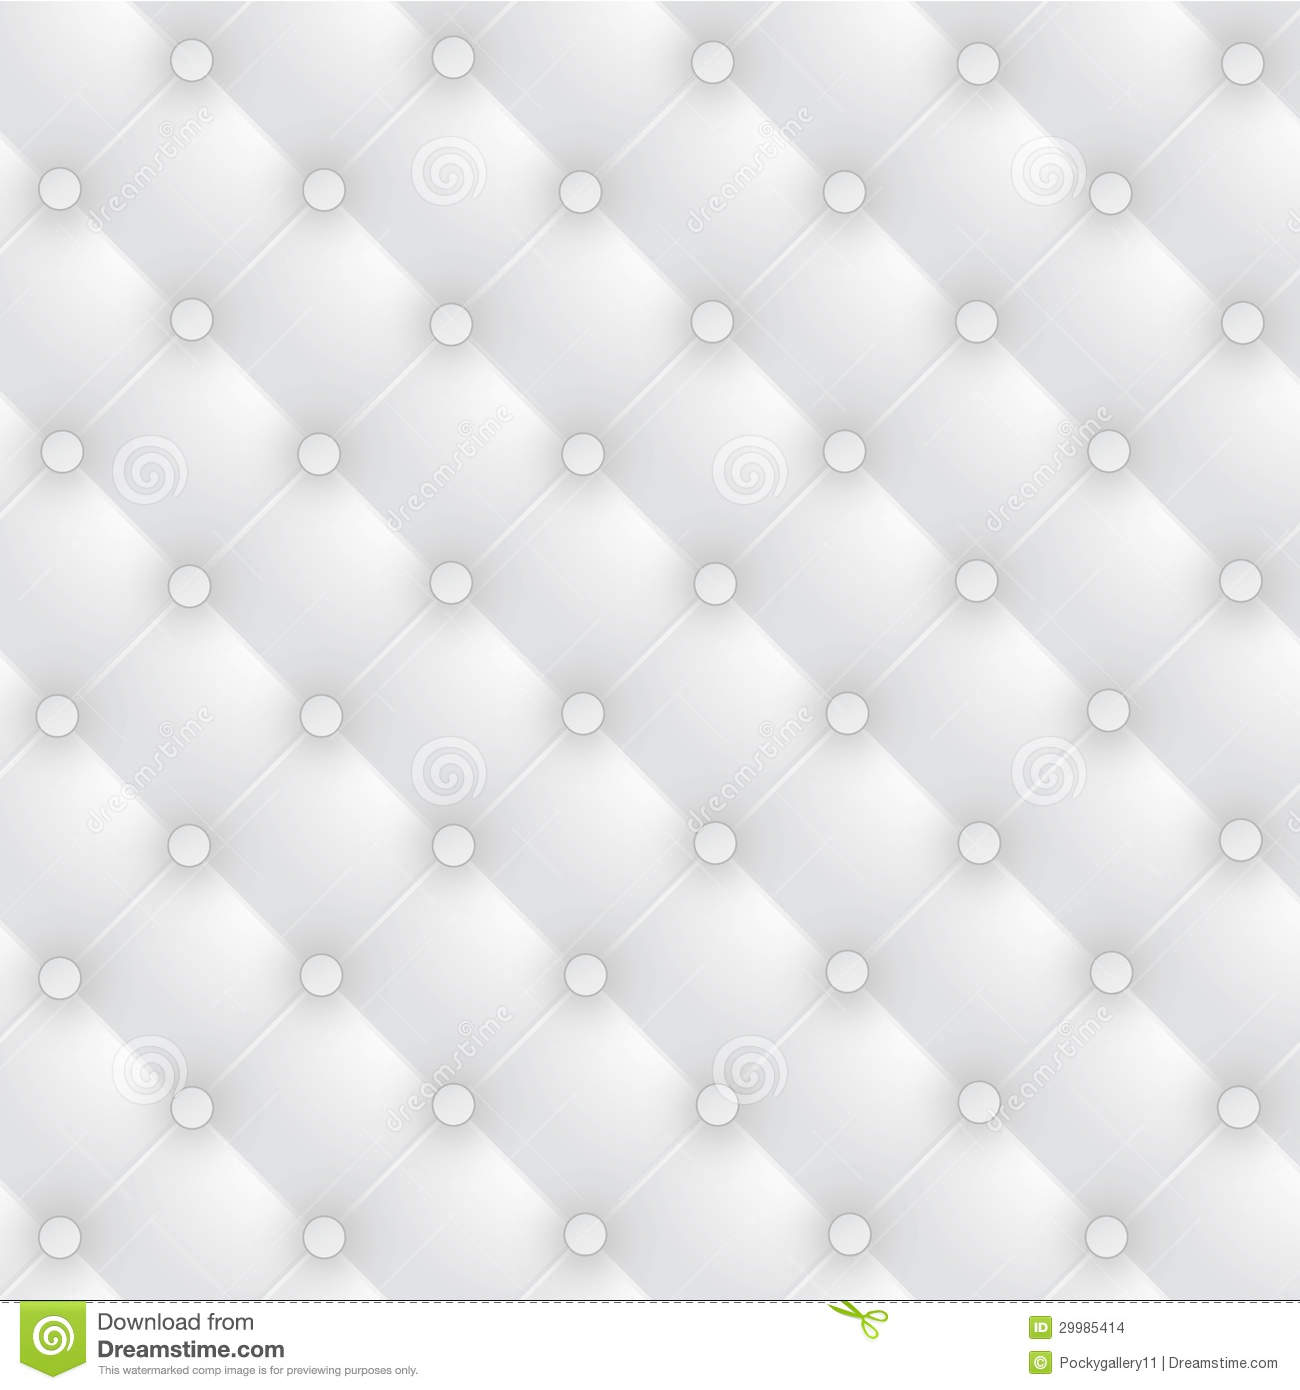 White Luxury Leather Upholstery Stock Images Image 29985414 : white luxury leather upholstery background 29985414 from www.dreamstime.com size 1300 x 1390 jpeg 77kB